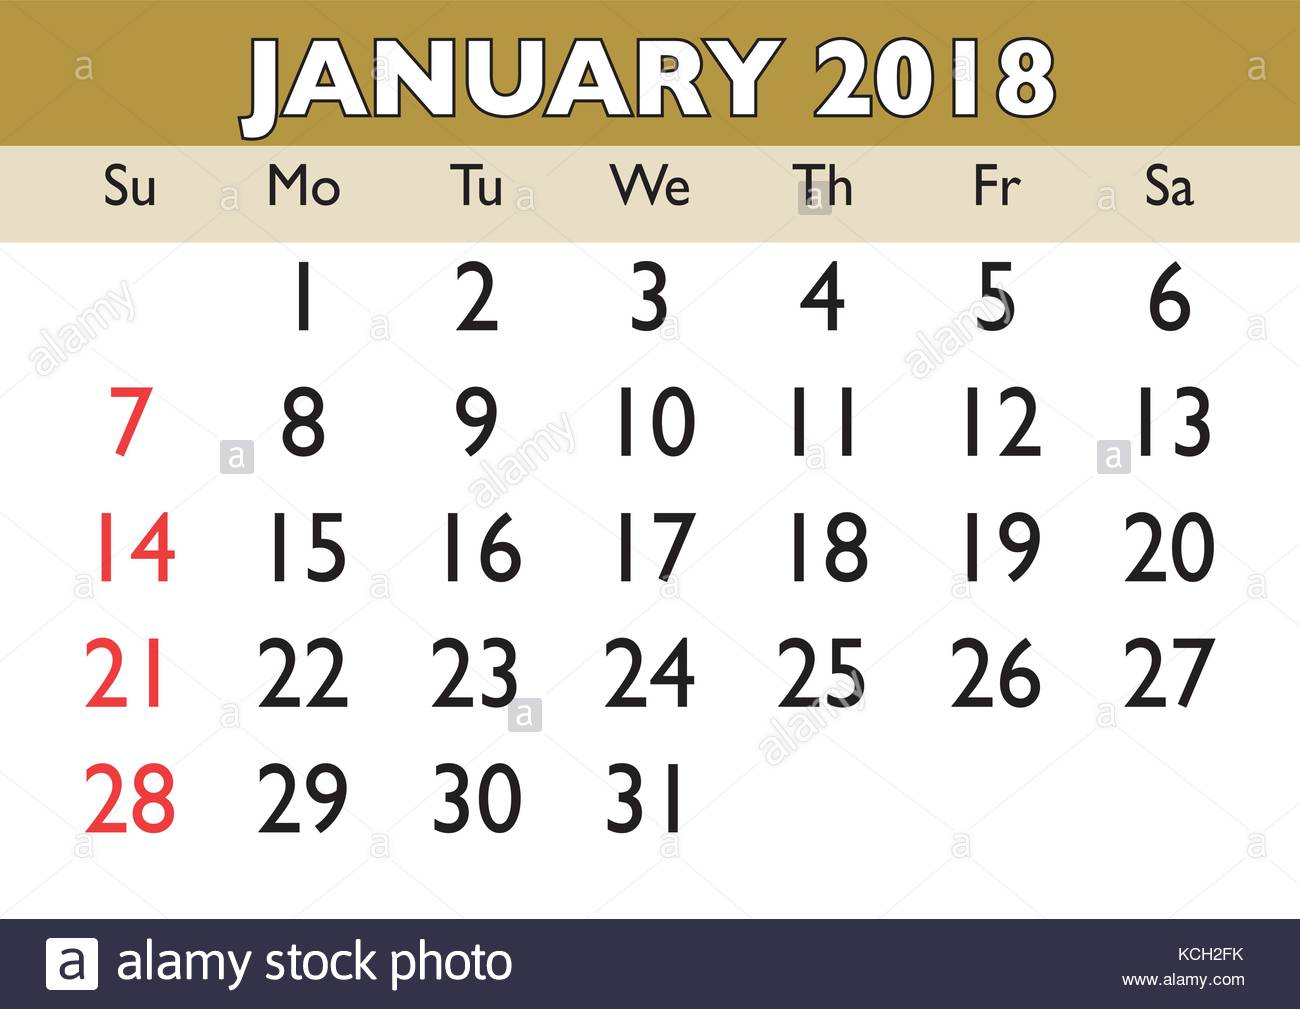 2018 calendar month by month